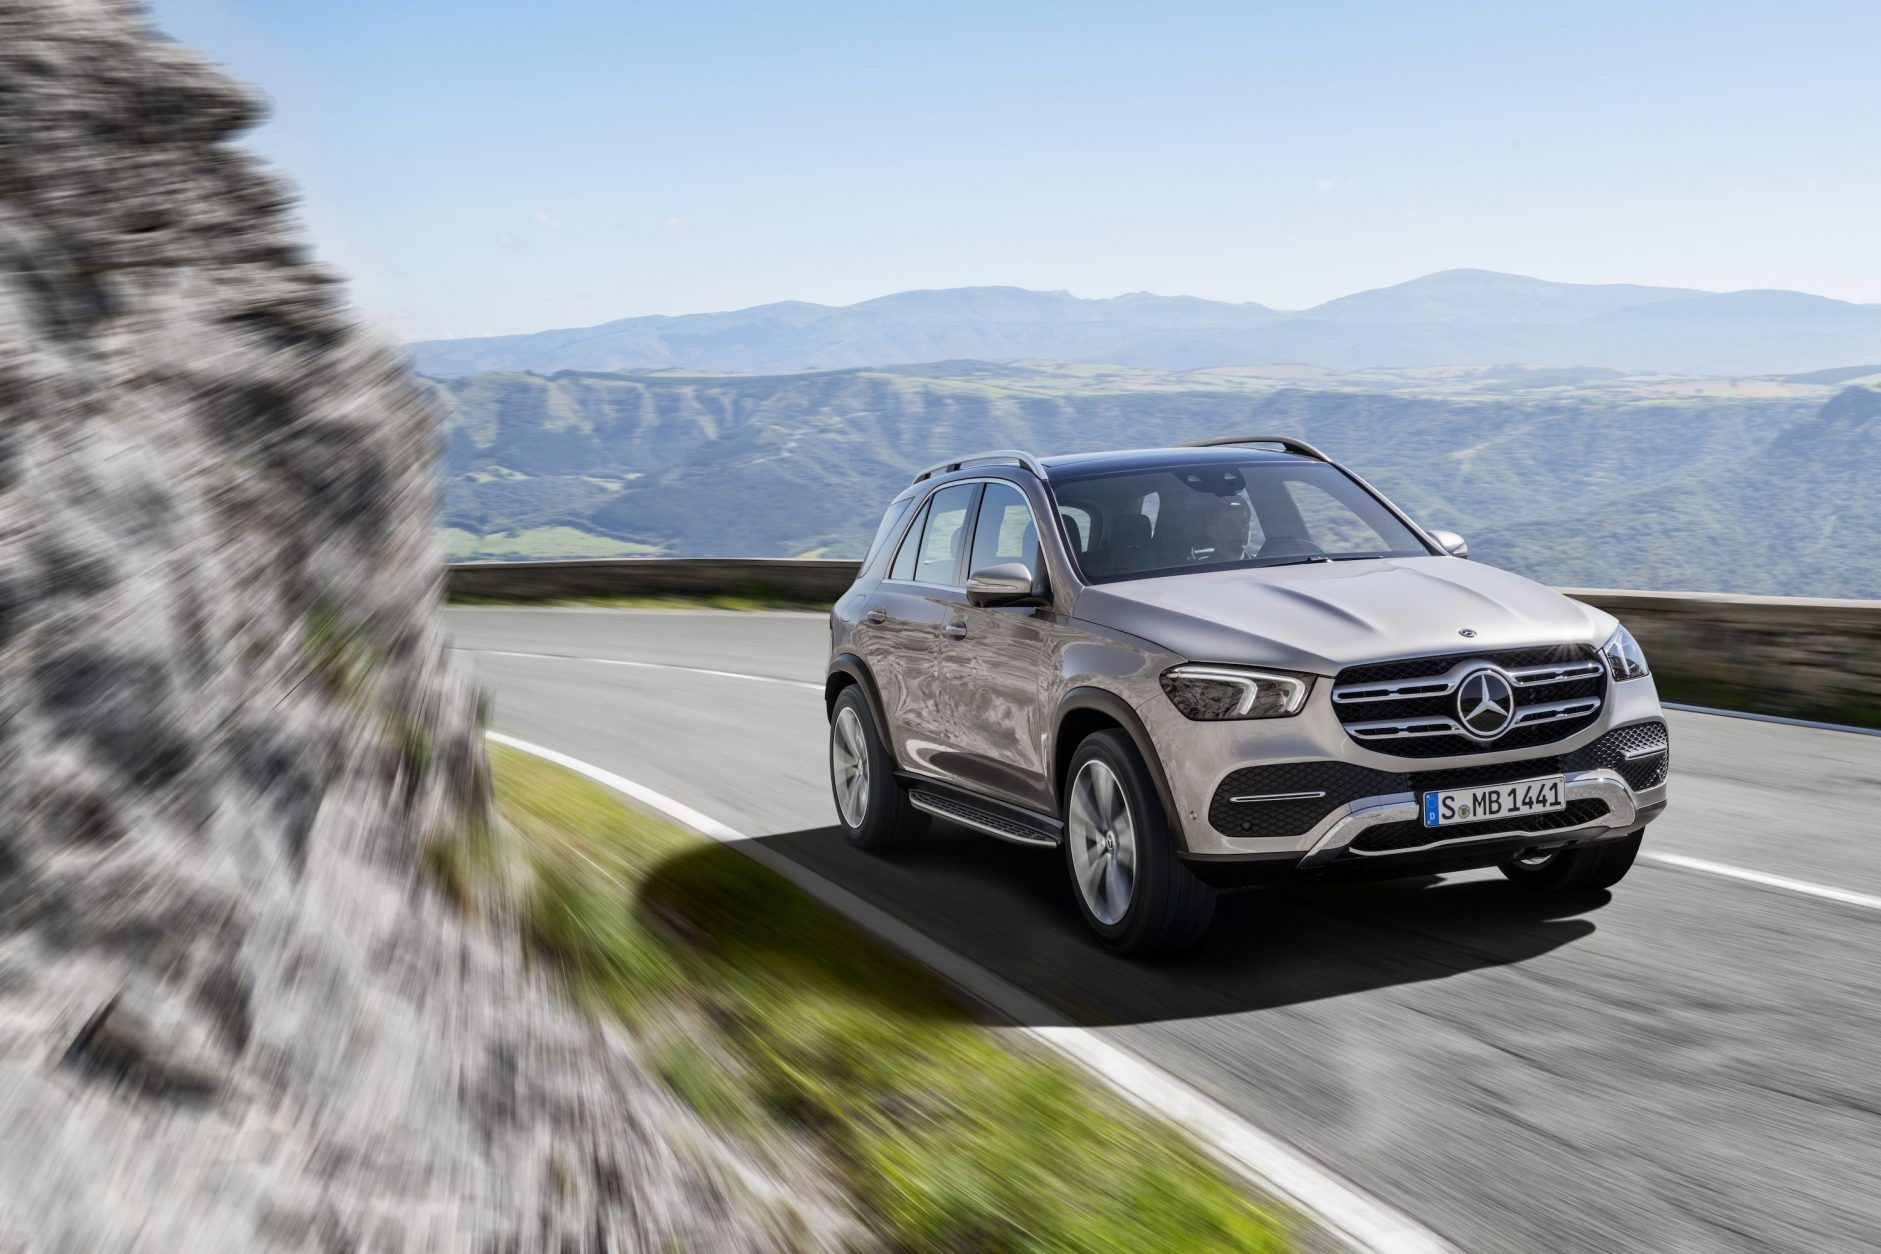 2020 Mercedes Benz Glg Cost Engine Release Date Styling Photos